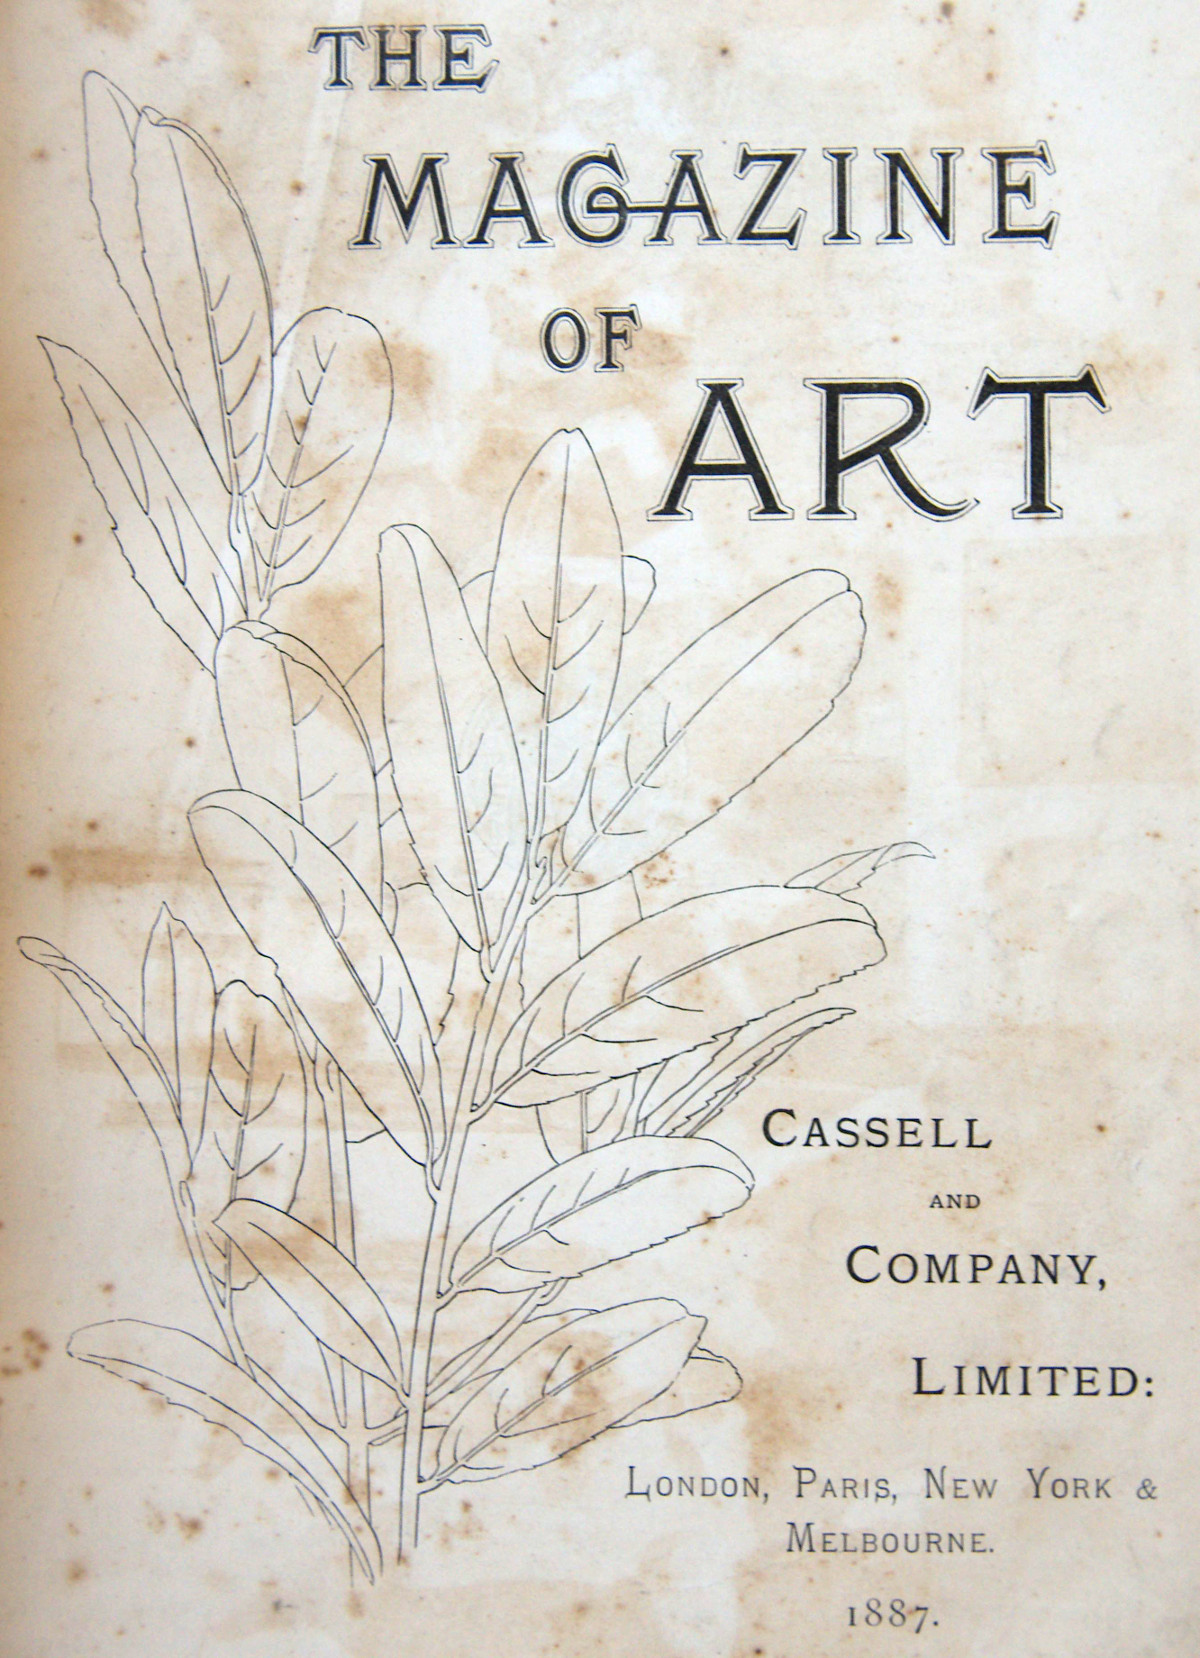 The original frontispiece from the Magazine of Art, 1887b edition